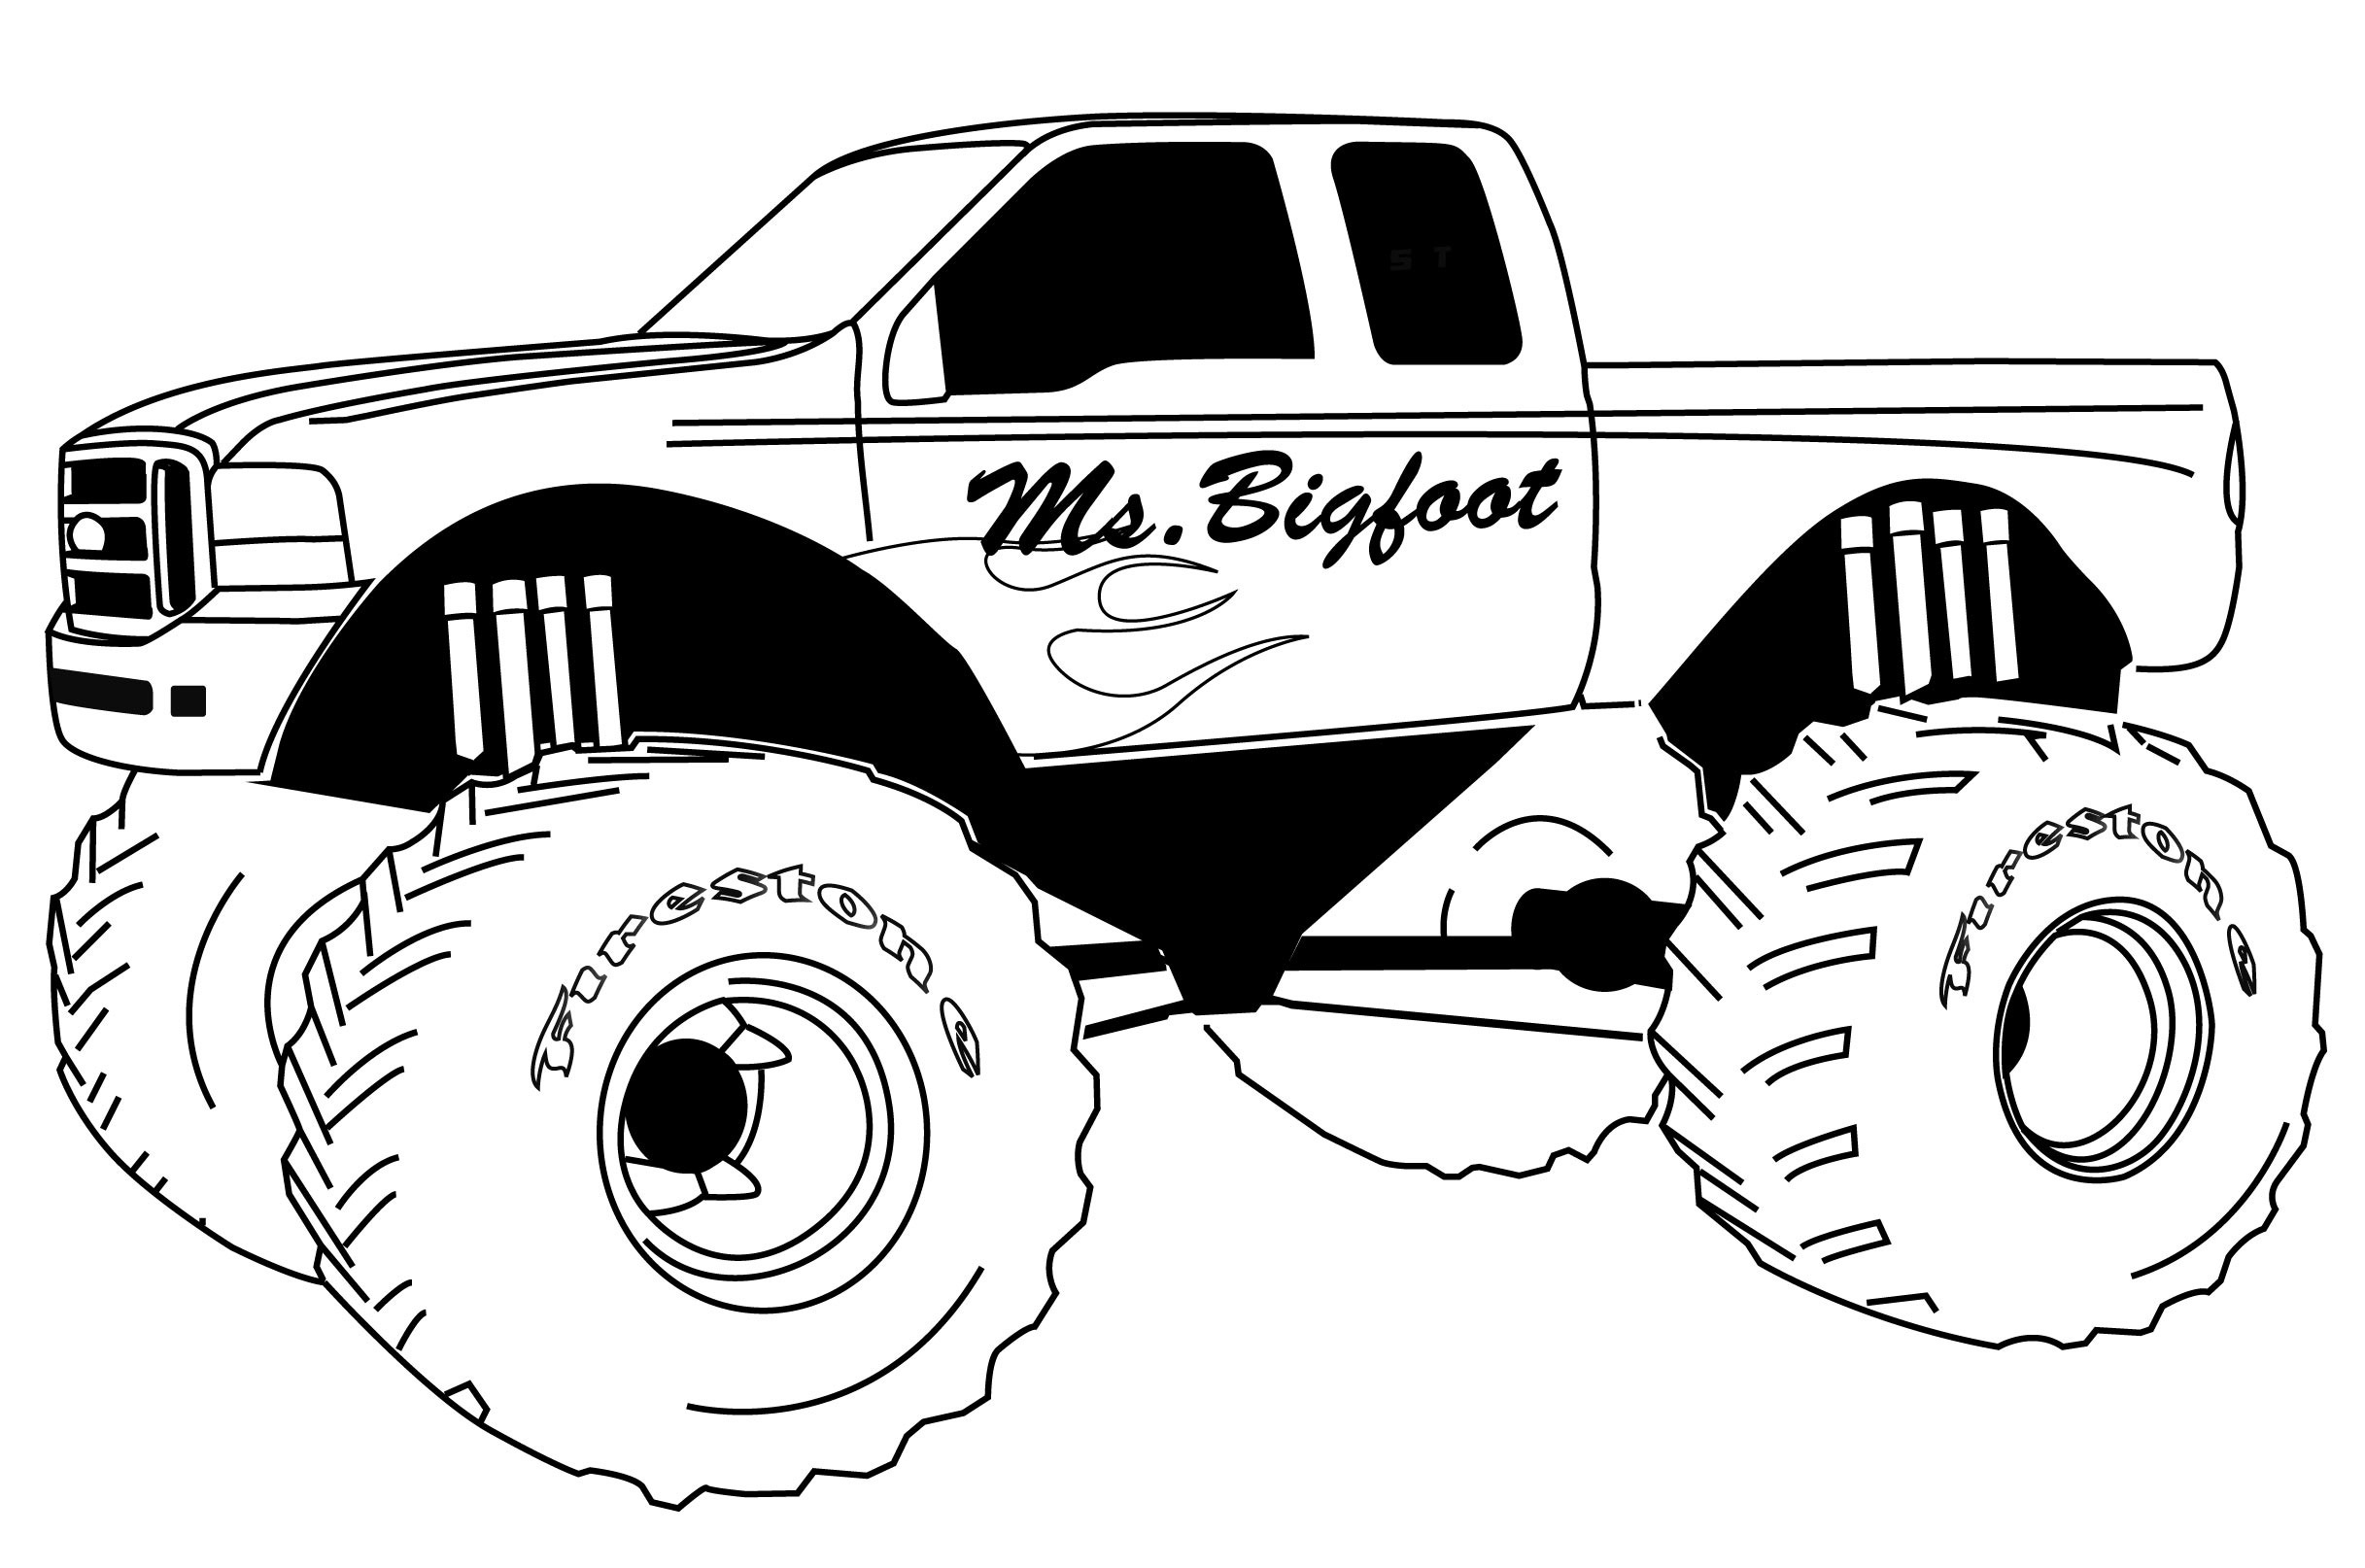 Adult Beauty Free Coloring Pages Monster Trucks Gallery Images cute free printable monster truck coloring pages for kids color gallery images